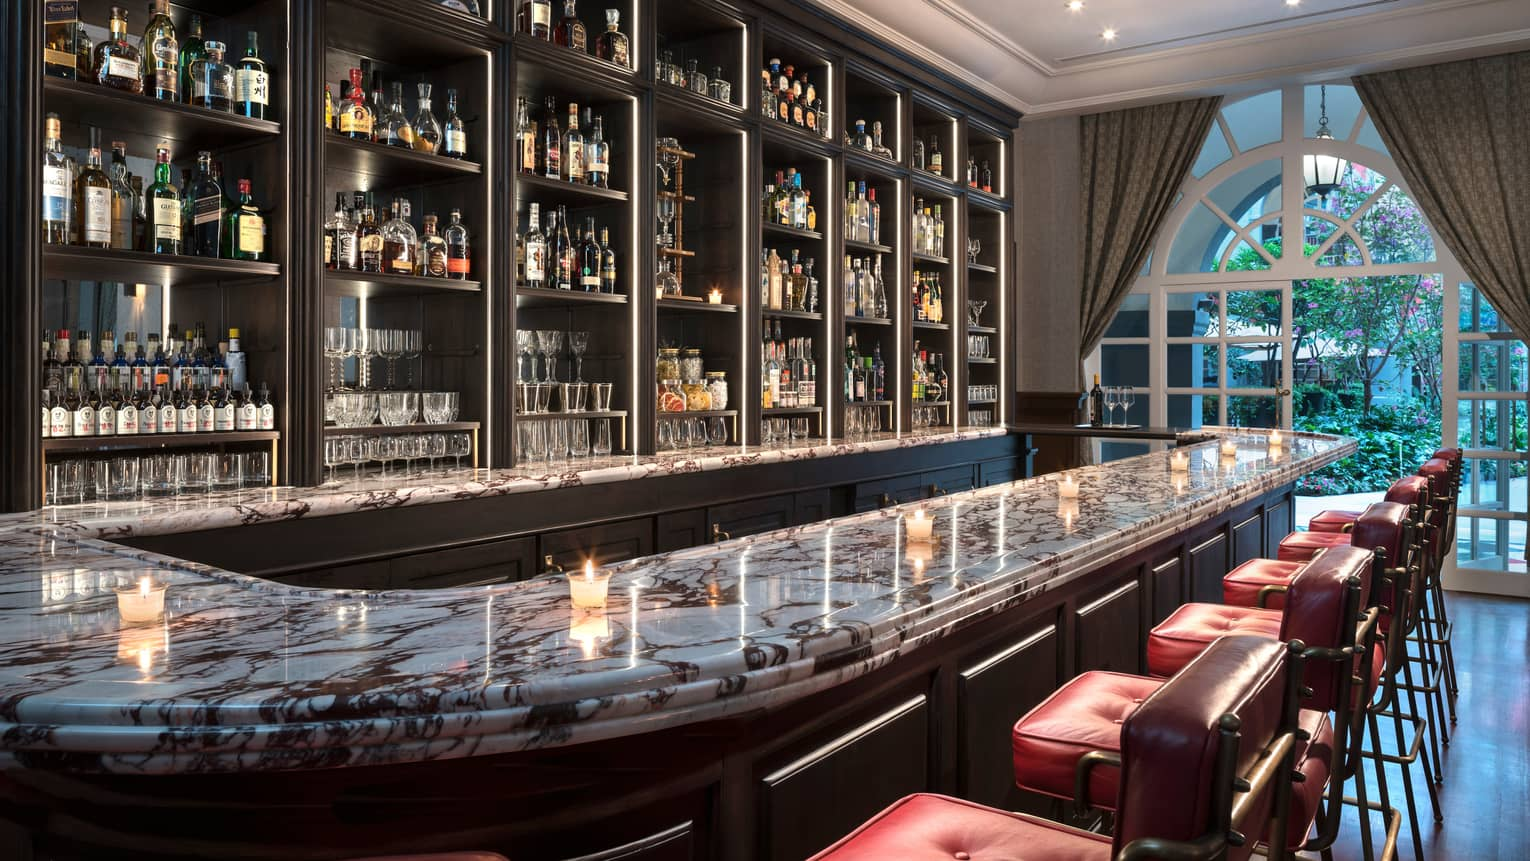 Fifty Mils curved marble bar top with candles, liquor on shelves, arched windows